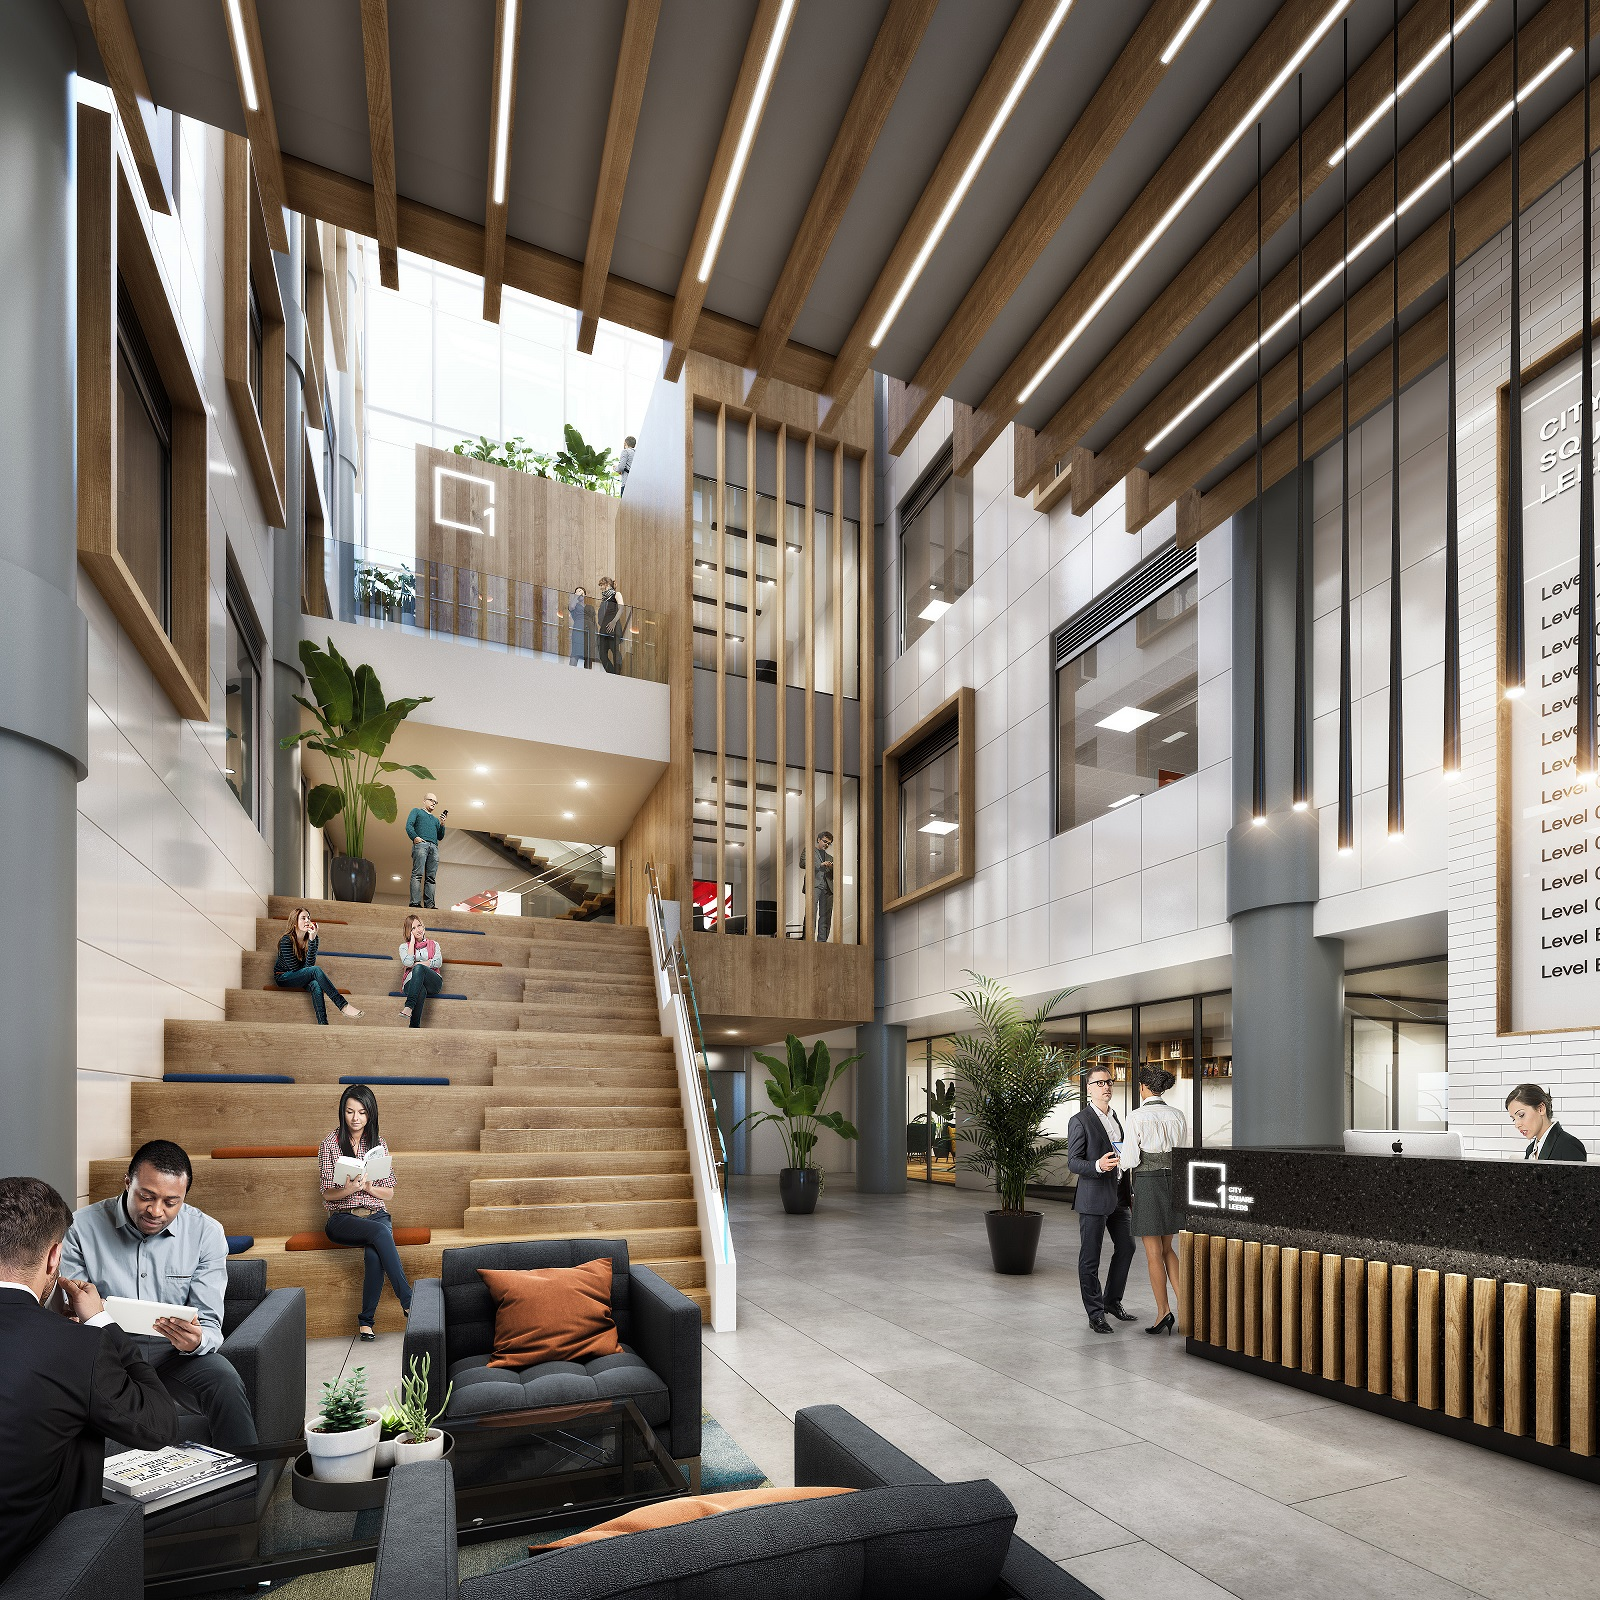 Paragon appointed by APAM on £7.5m refurbishment of 108,000 sq ft Leeds city centre office building